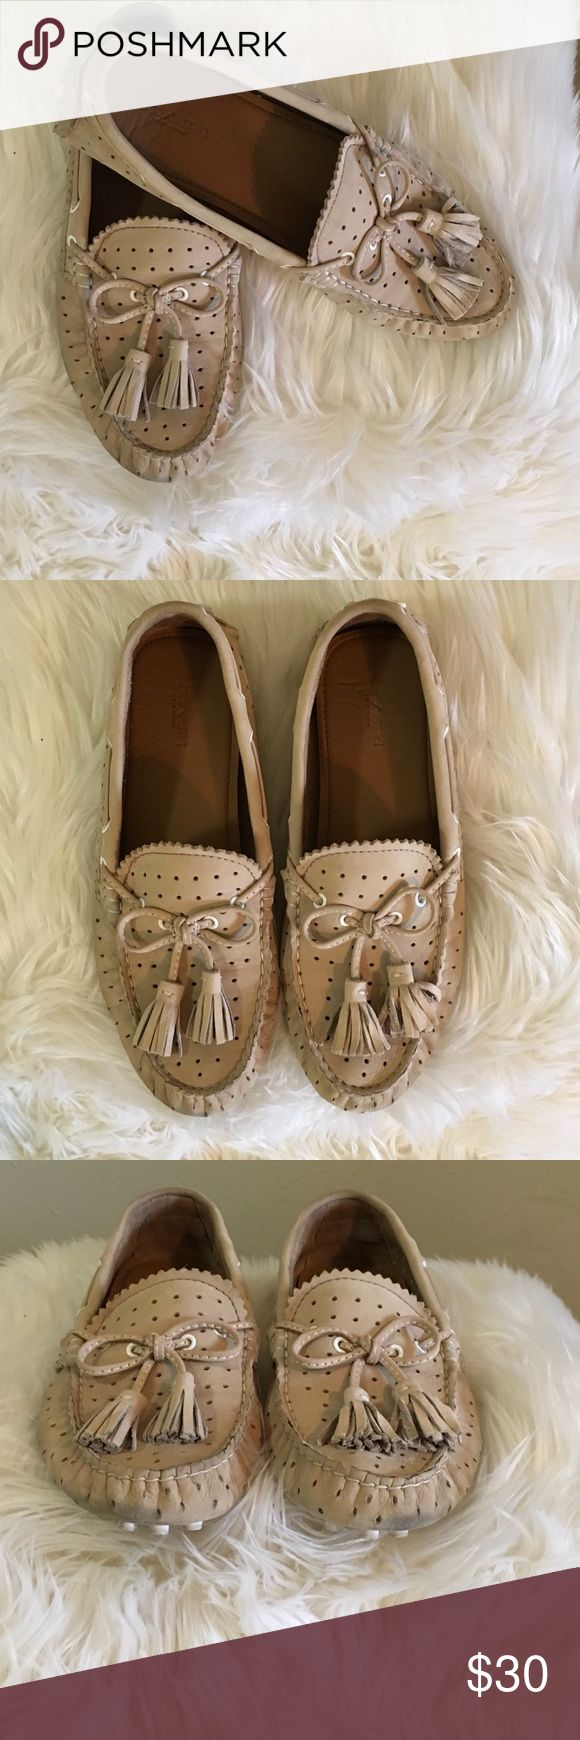 Coach flats with tassels. Coach flats with tassels. These are very comfortable. They have been loved. They have plenty of life. Please see pictures. No box. Sorry No trades. Coach Shoes Flats & Loafers